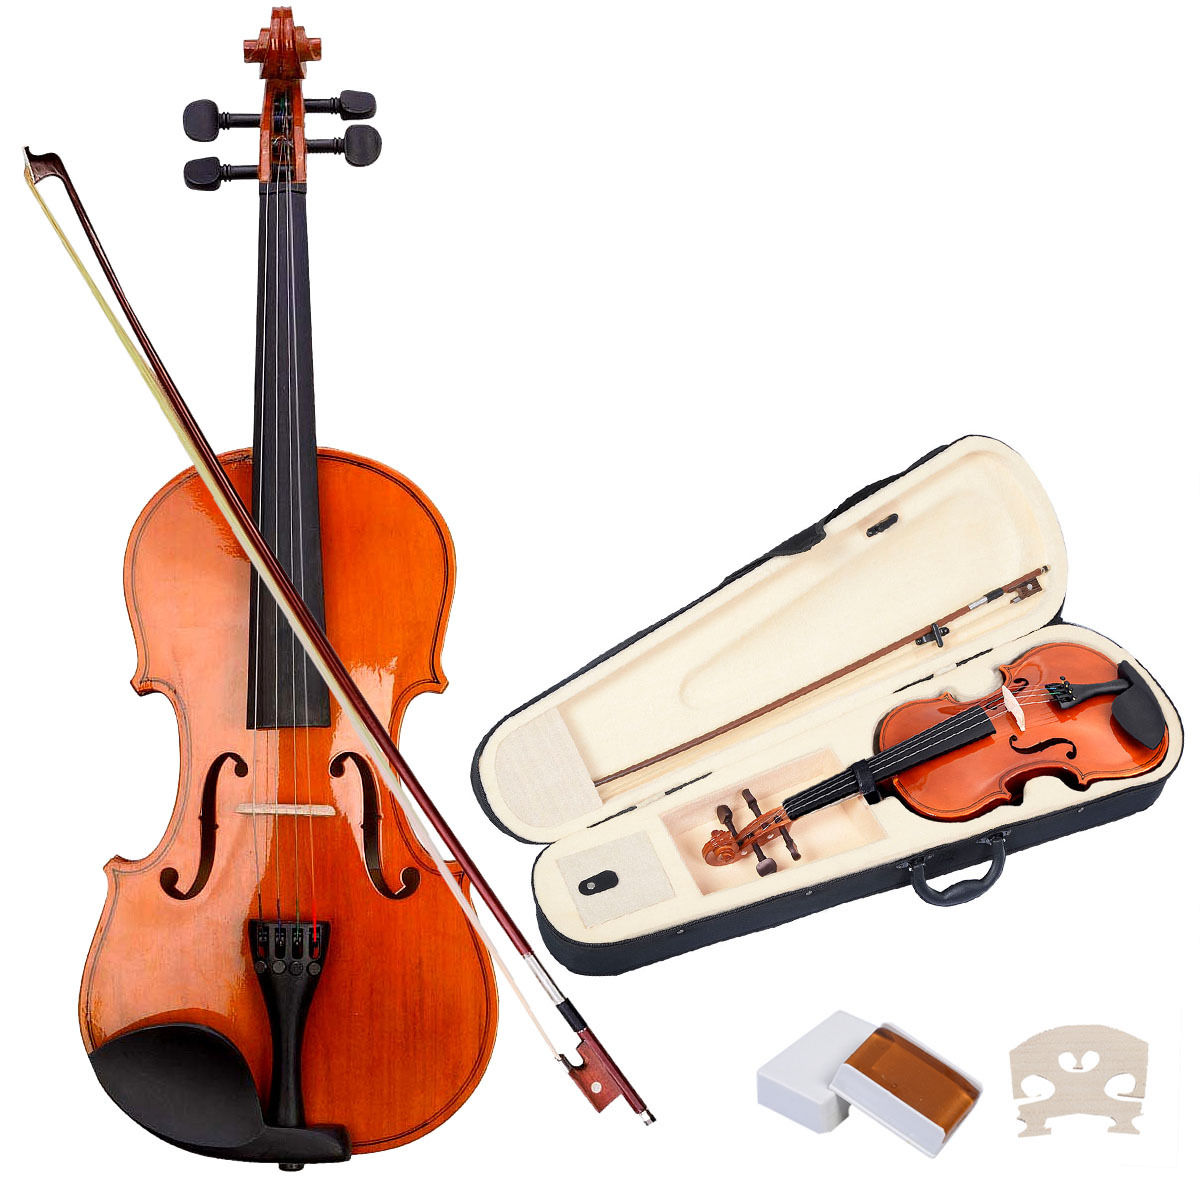 Costway Full Size 4 4 Natural Acoustic Violin Fiddle with Case Bow by Costway